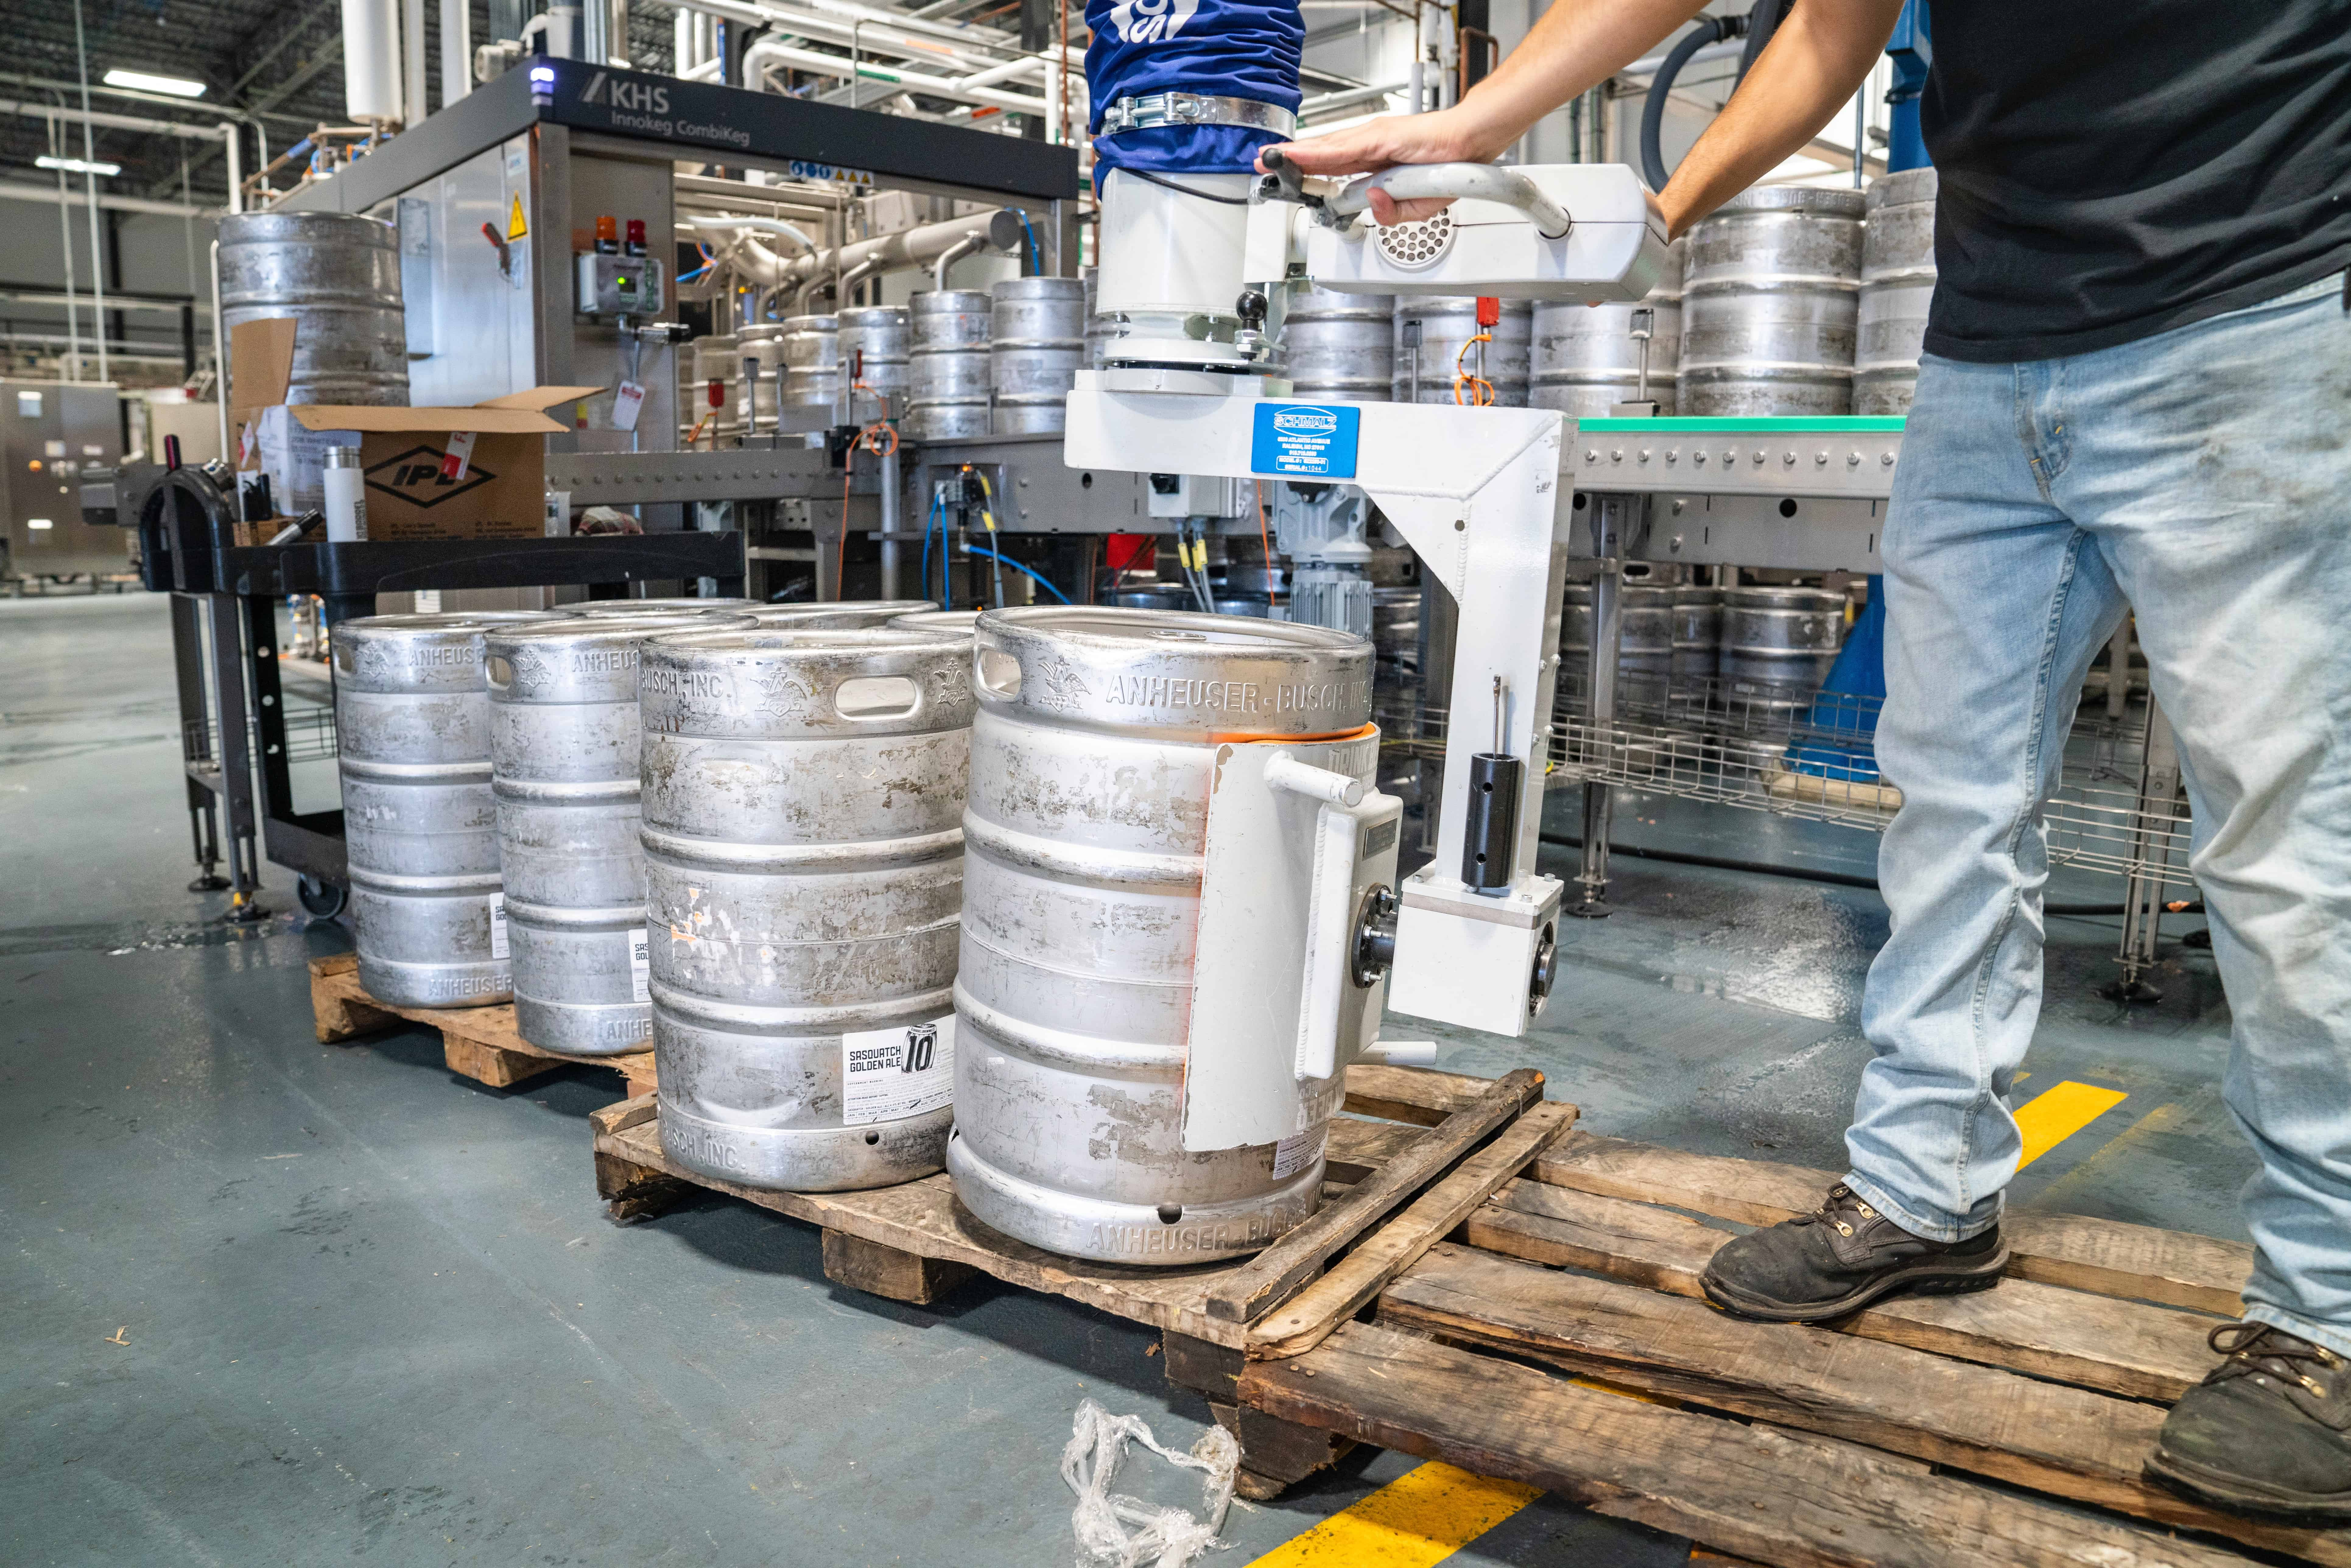 What Types of Chemical Contract Manufacturing Does ReAgent Provide